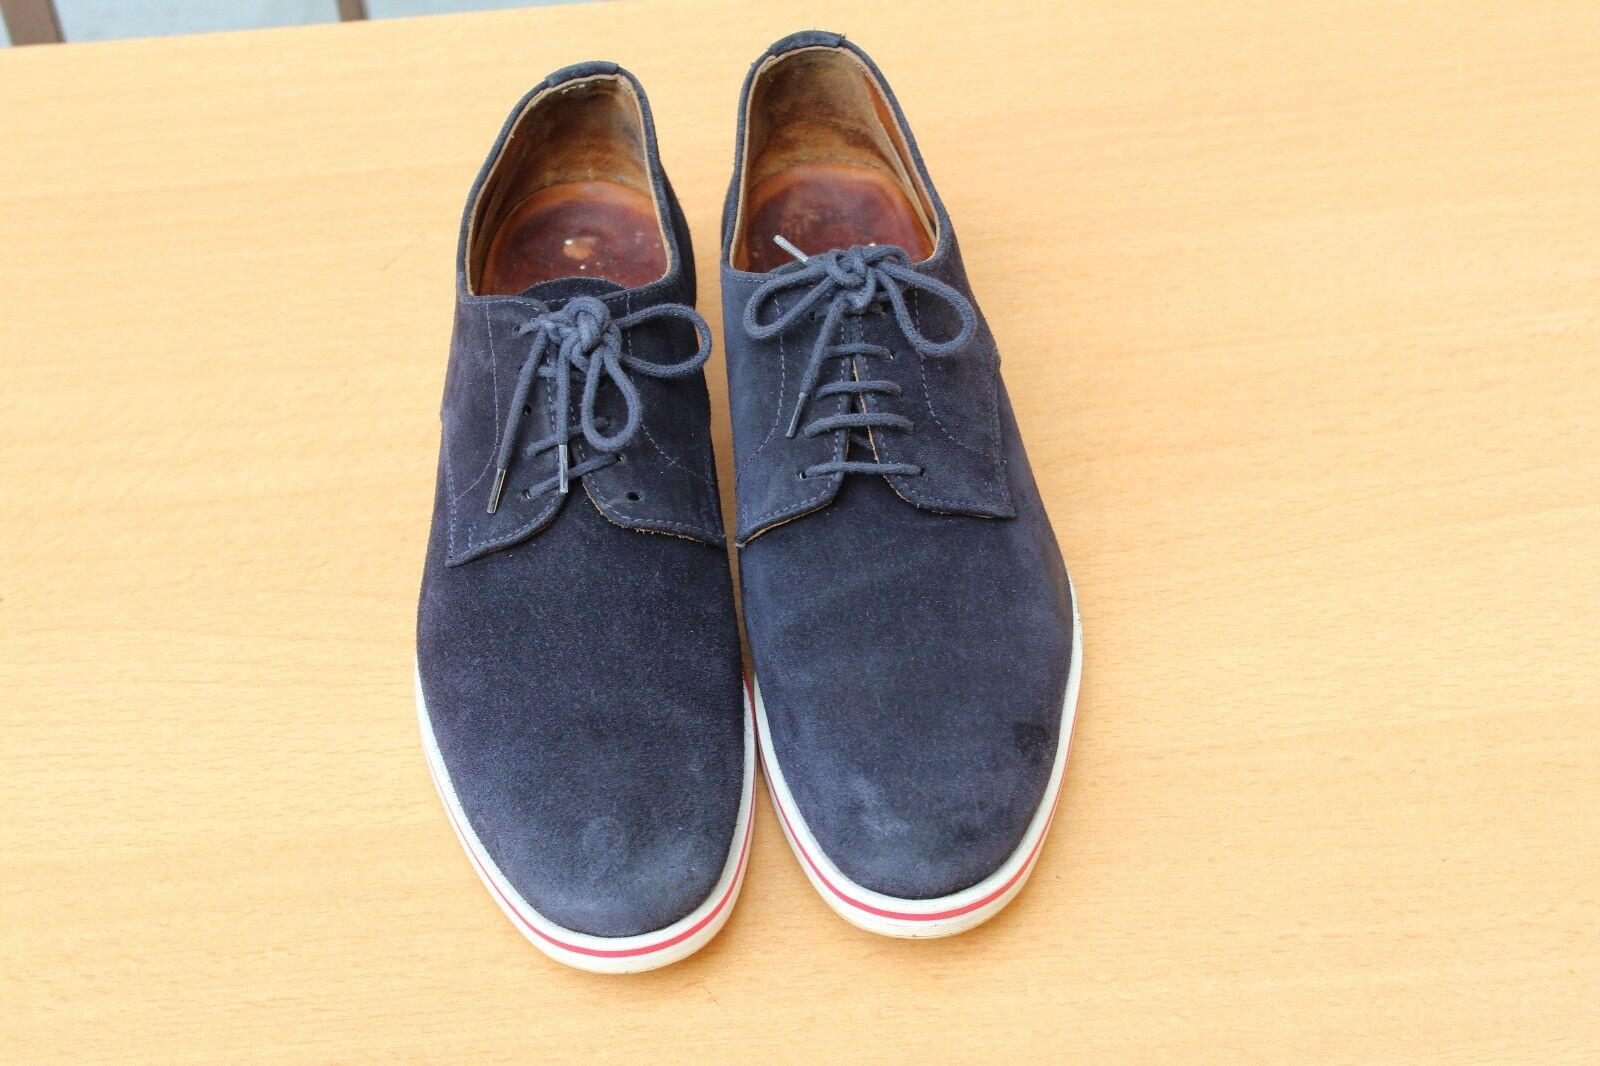 CHAUSSURE CHURCH'S EN EN EN DAIM BLEU 40,5 SUPER ETAT SHOES 51bf50